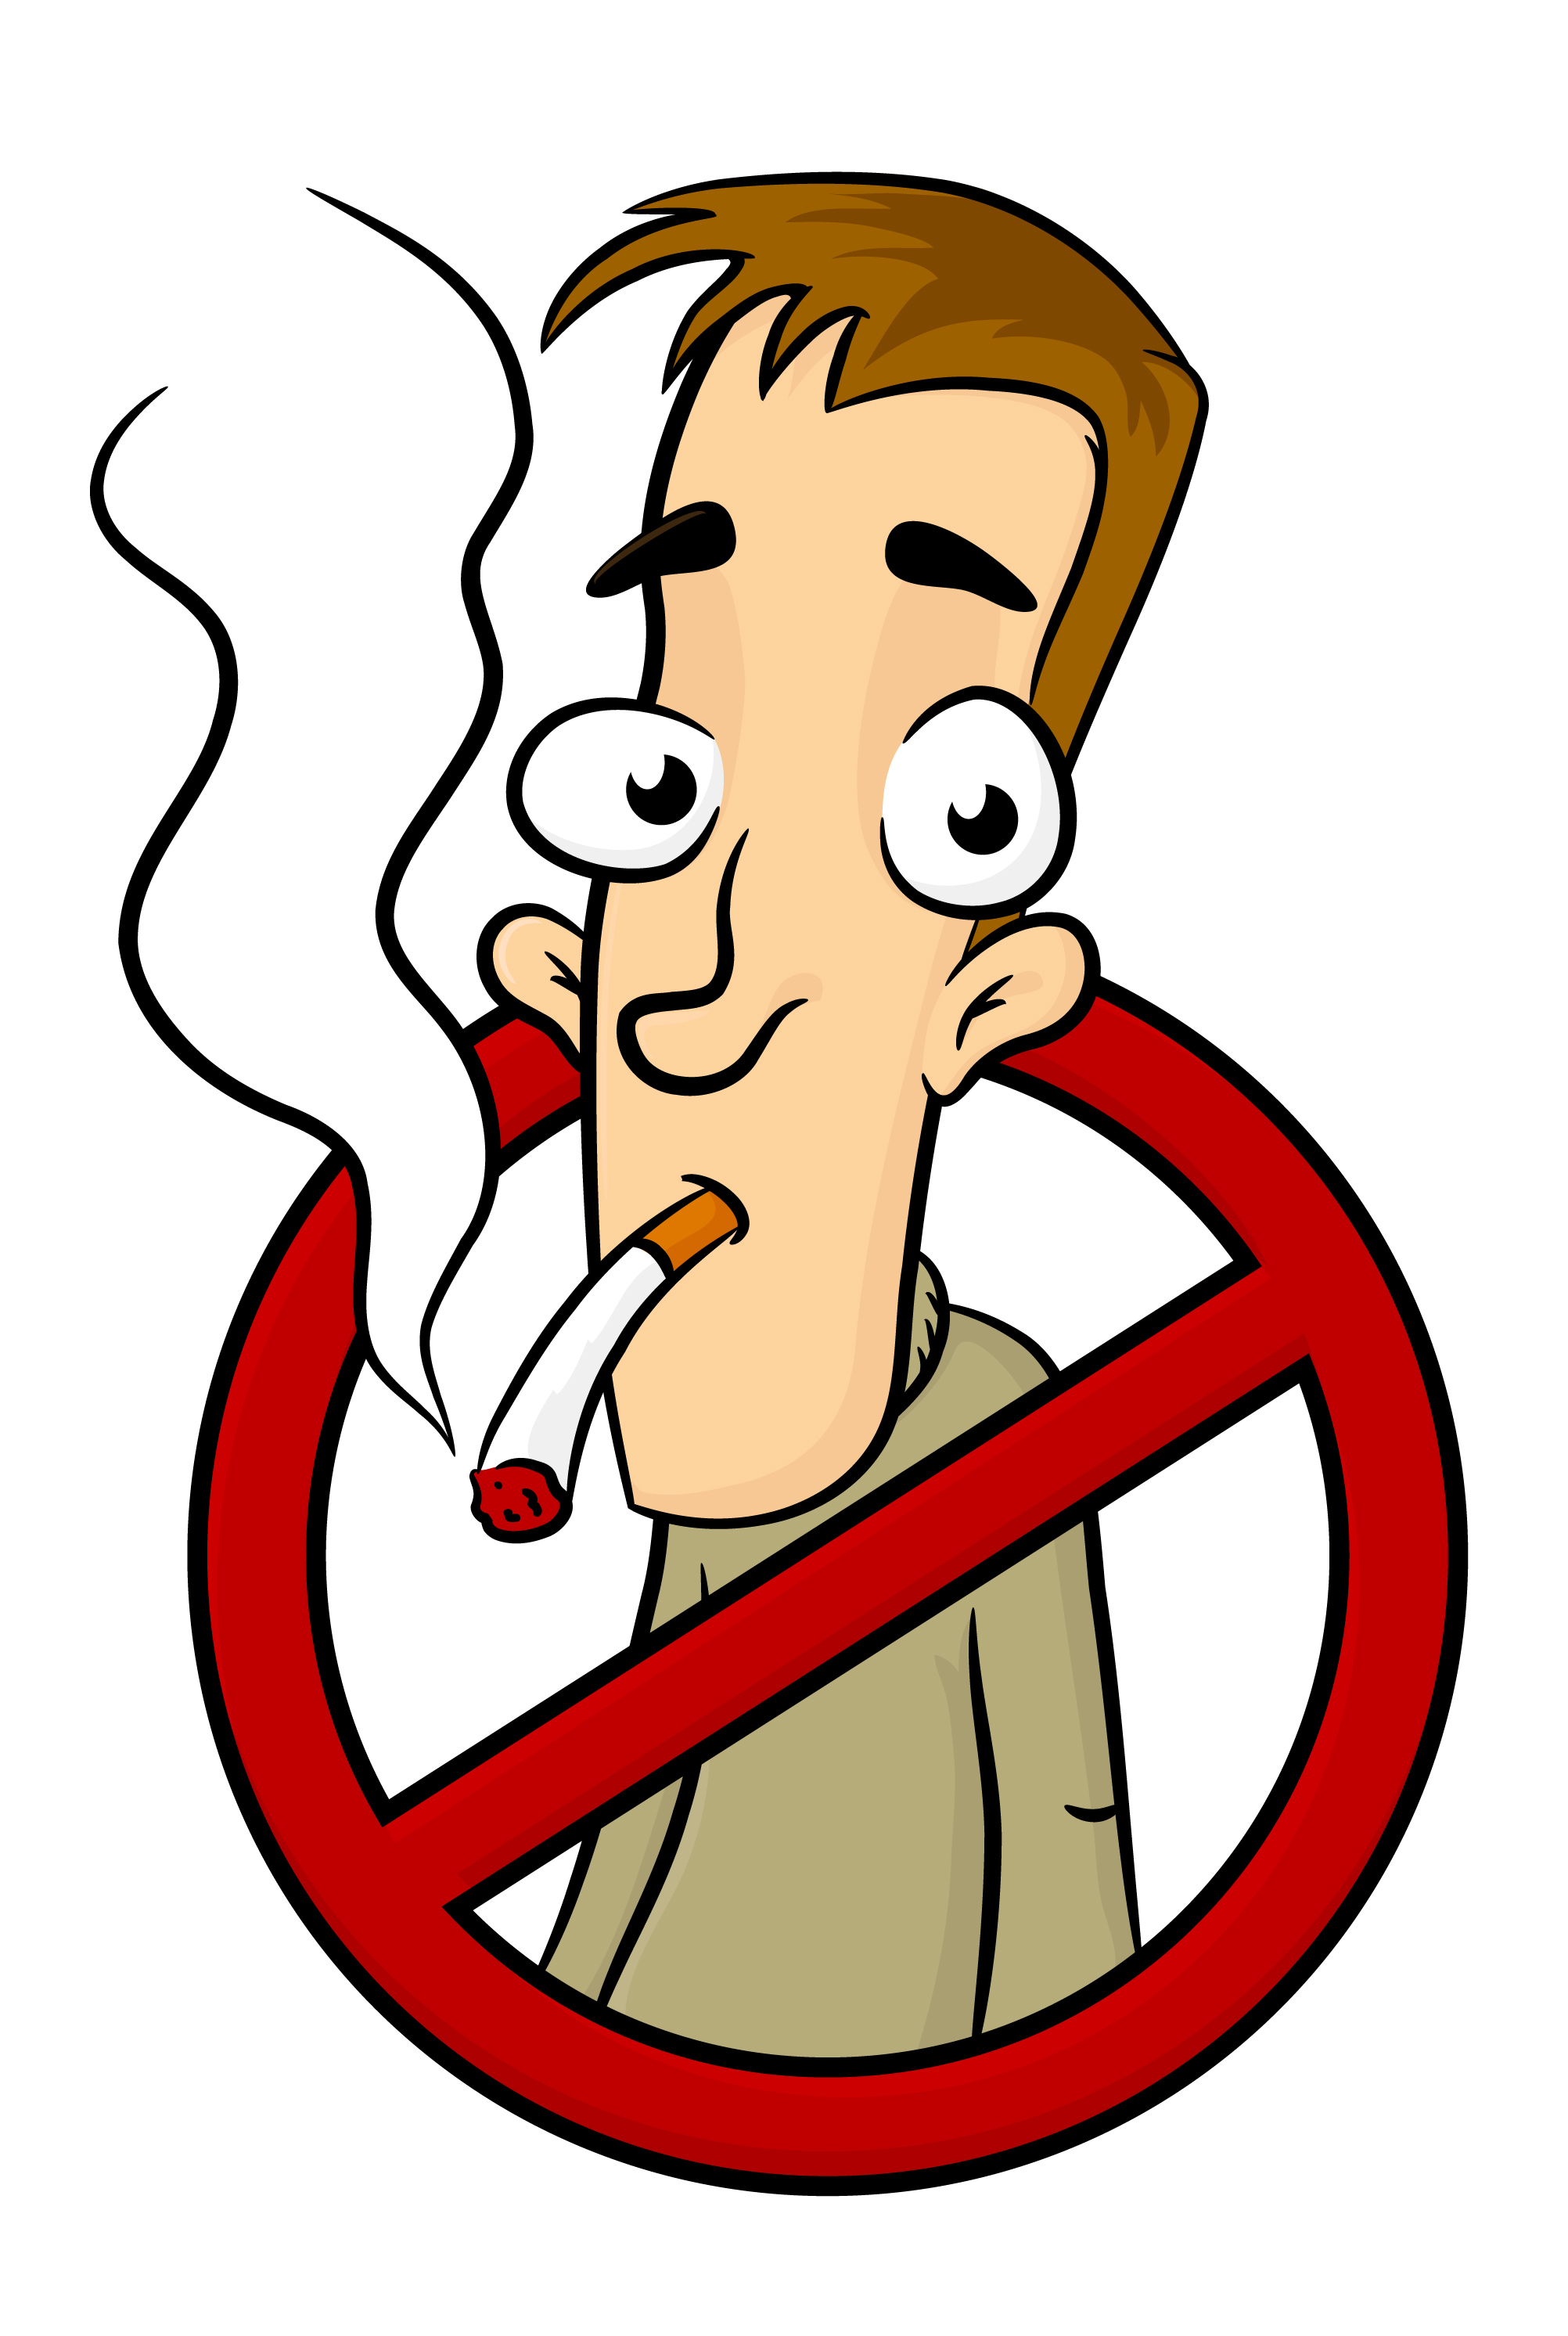 2004x2985 Harmful Clipart